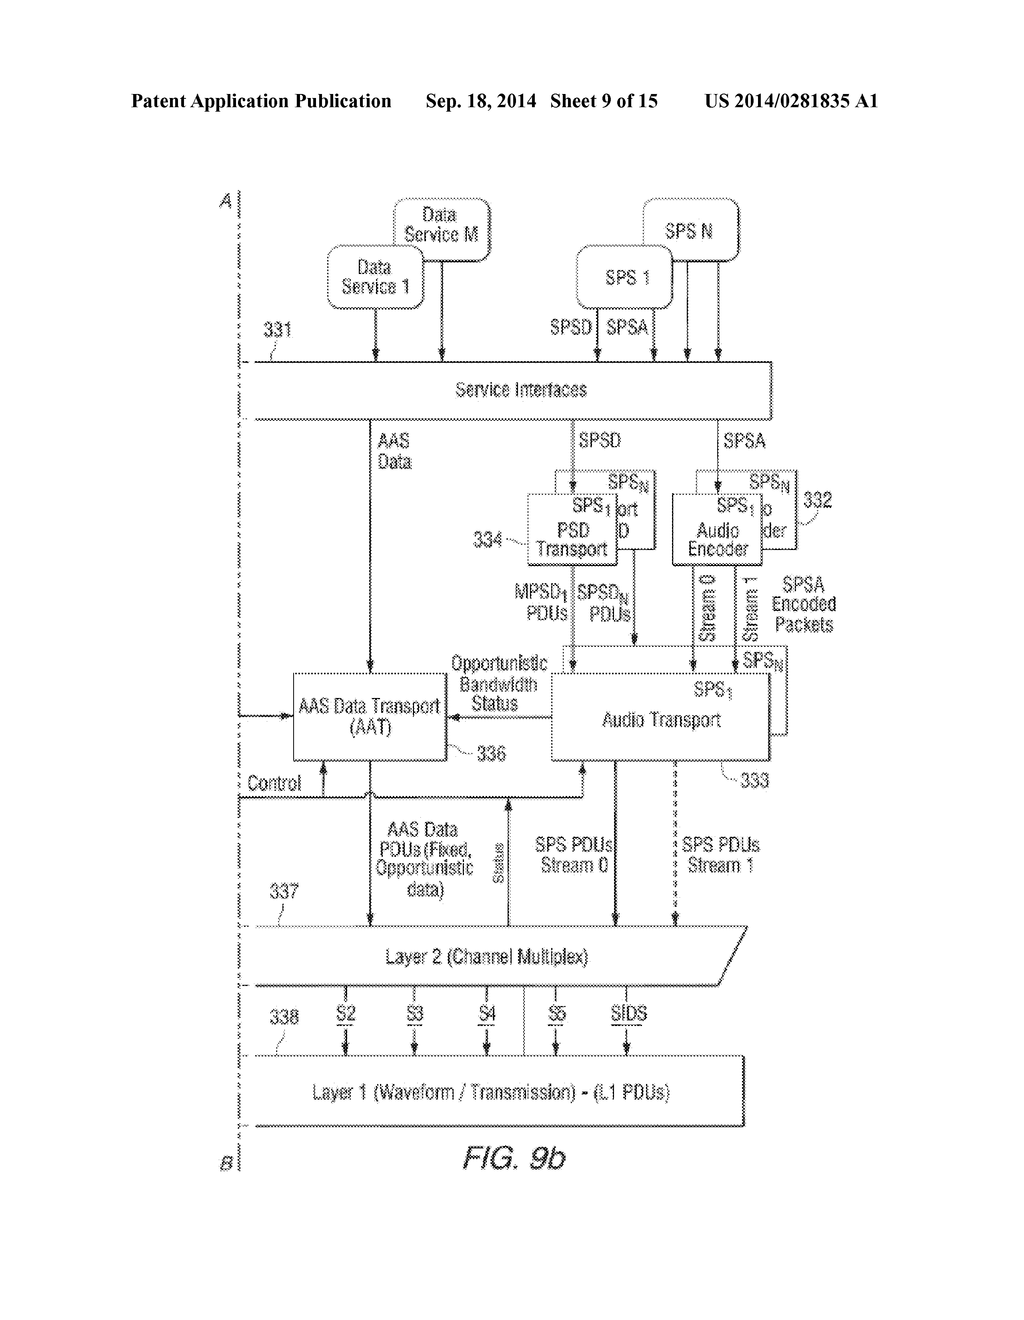 Digital Radio Schematic Detailed Wiring Diagrams Am Fm Receiver Circuit Using Ta8122 Integrated Ic System And Method For Recovering Audio Pdu Transport Elements In Simple